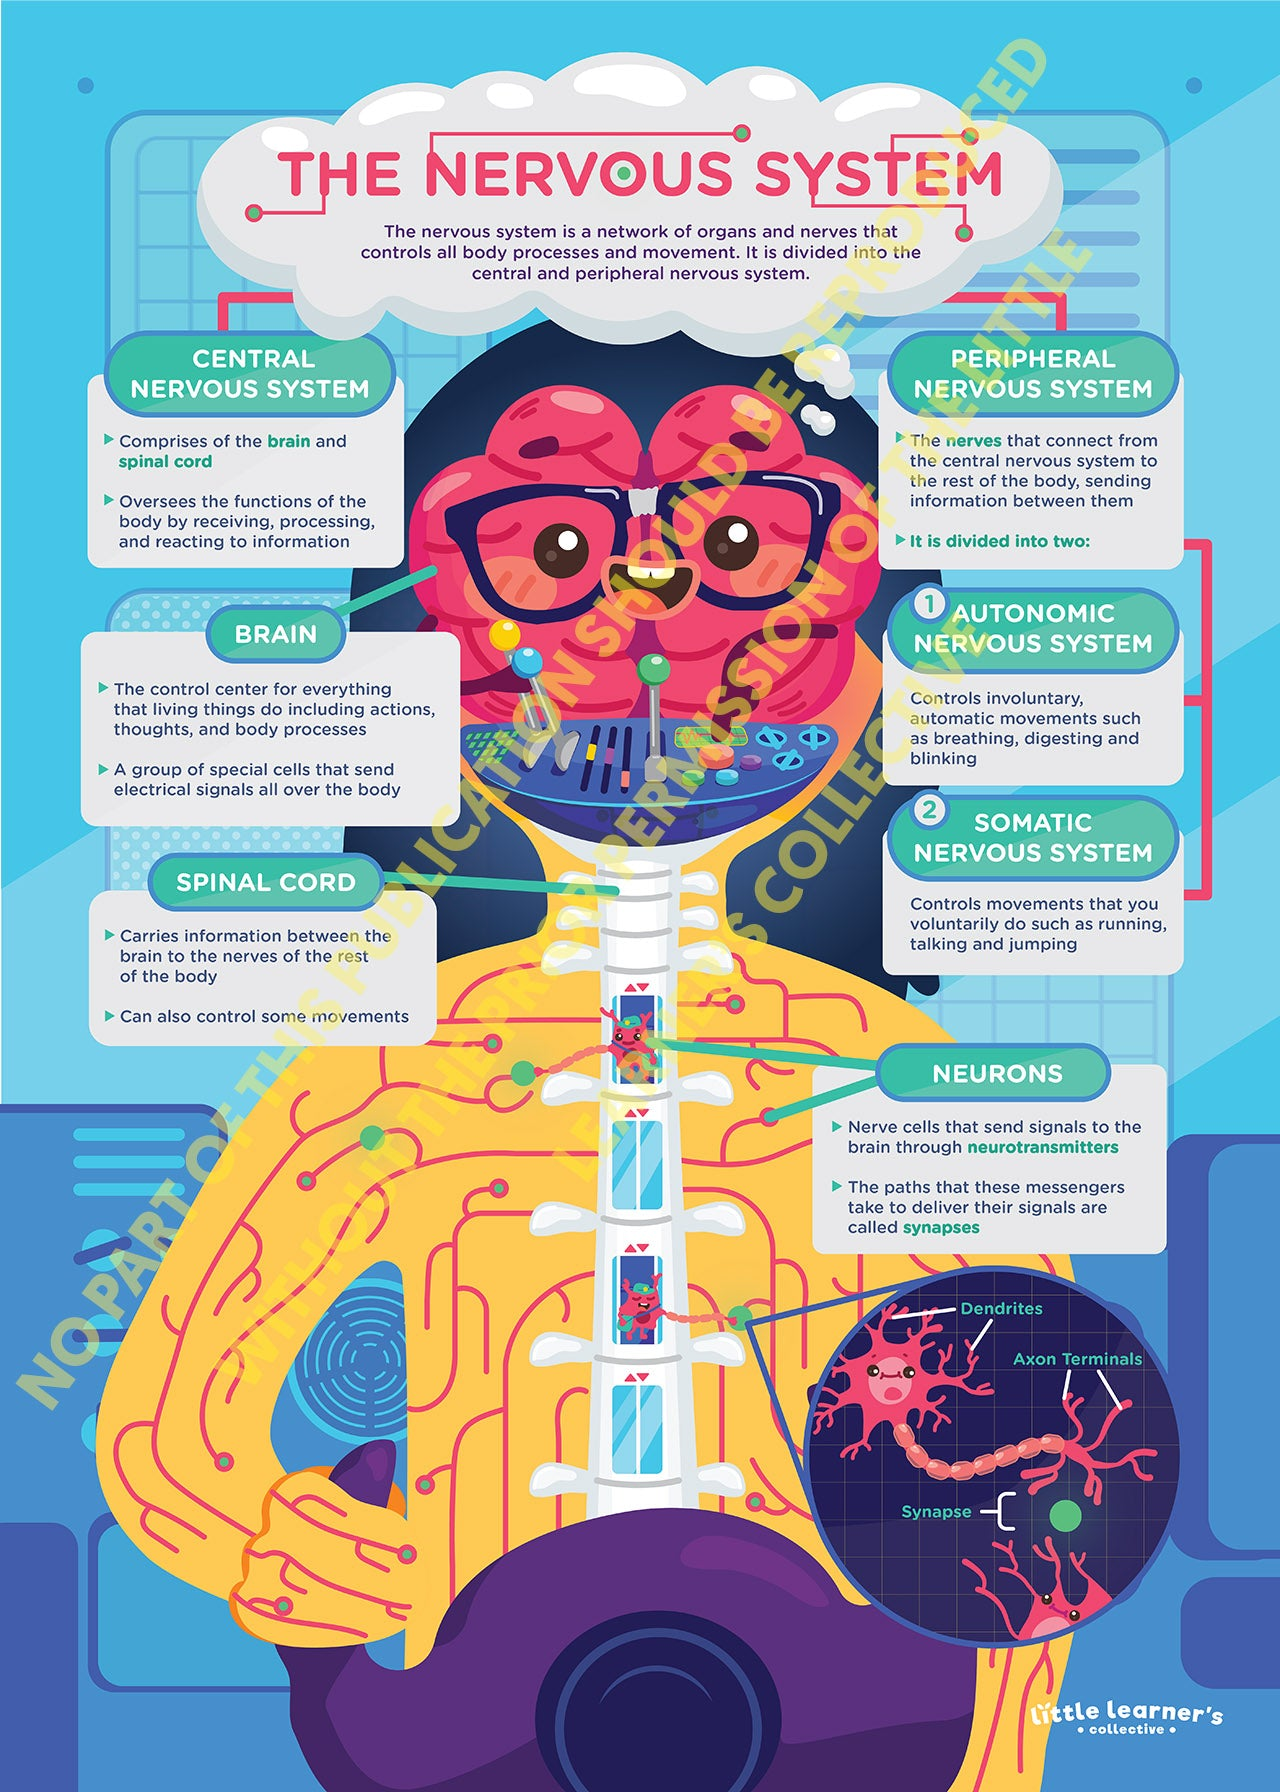 Nervous System: The Human's Control Room